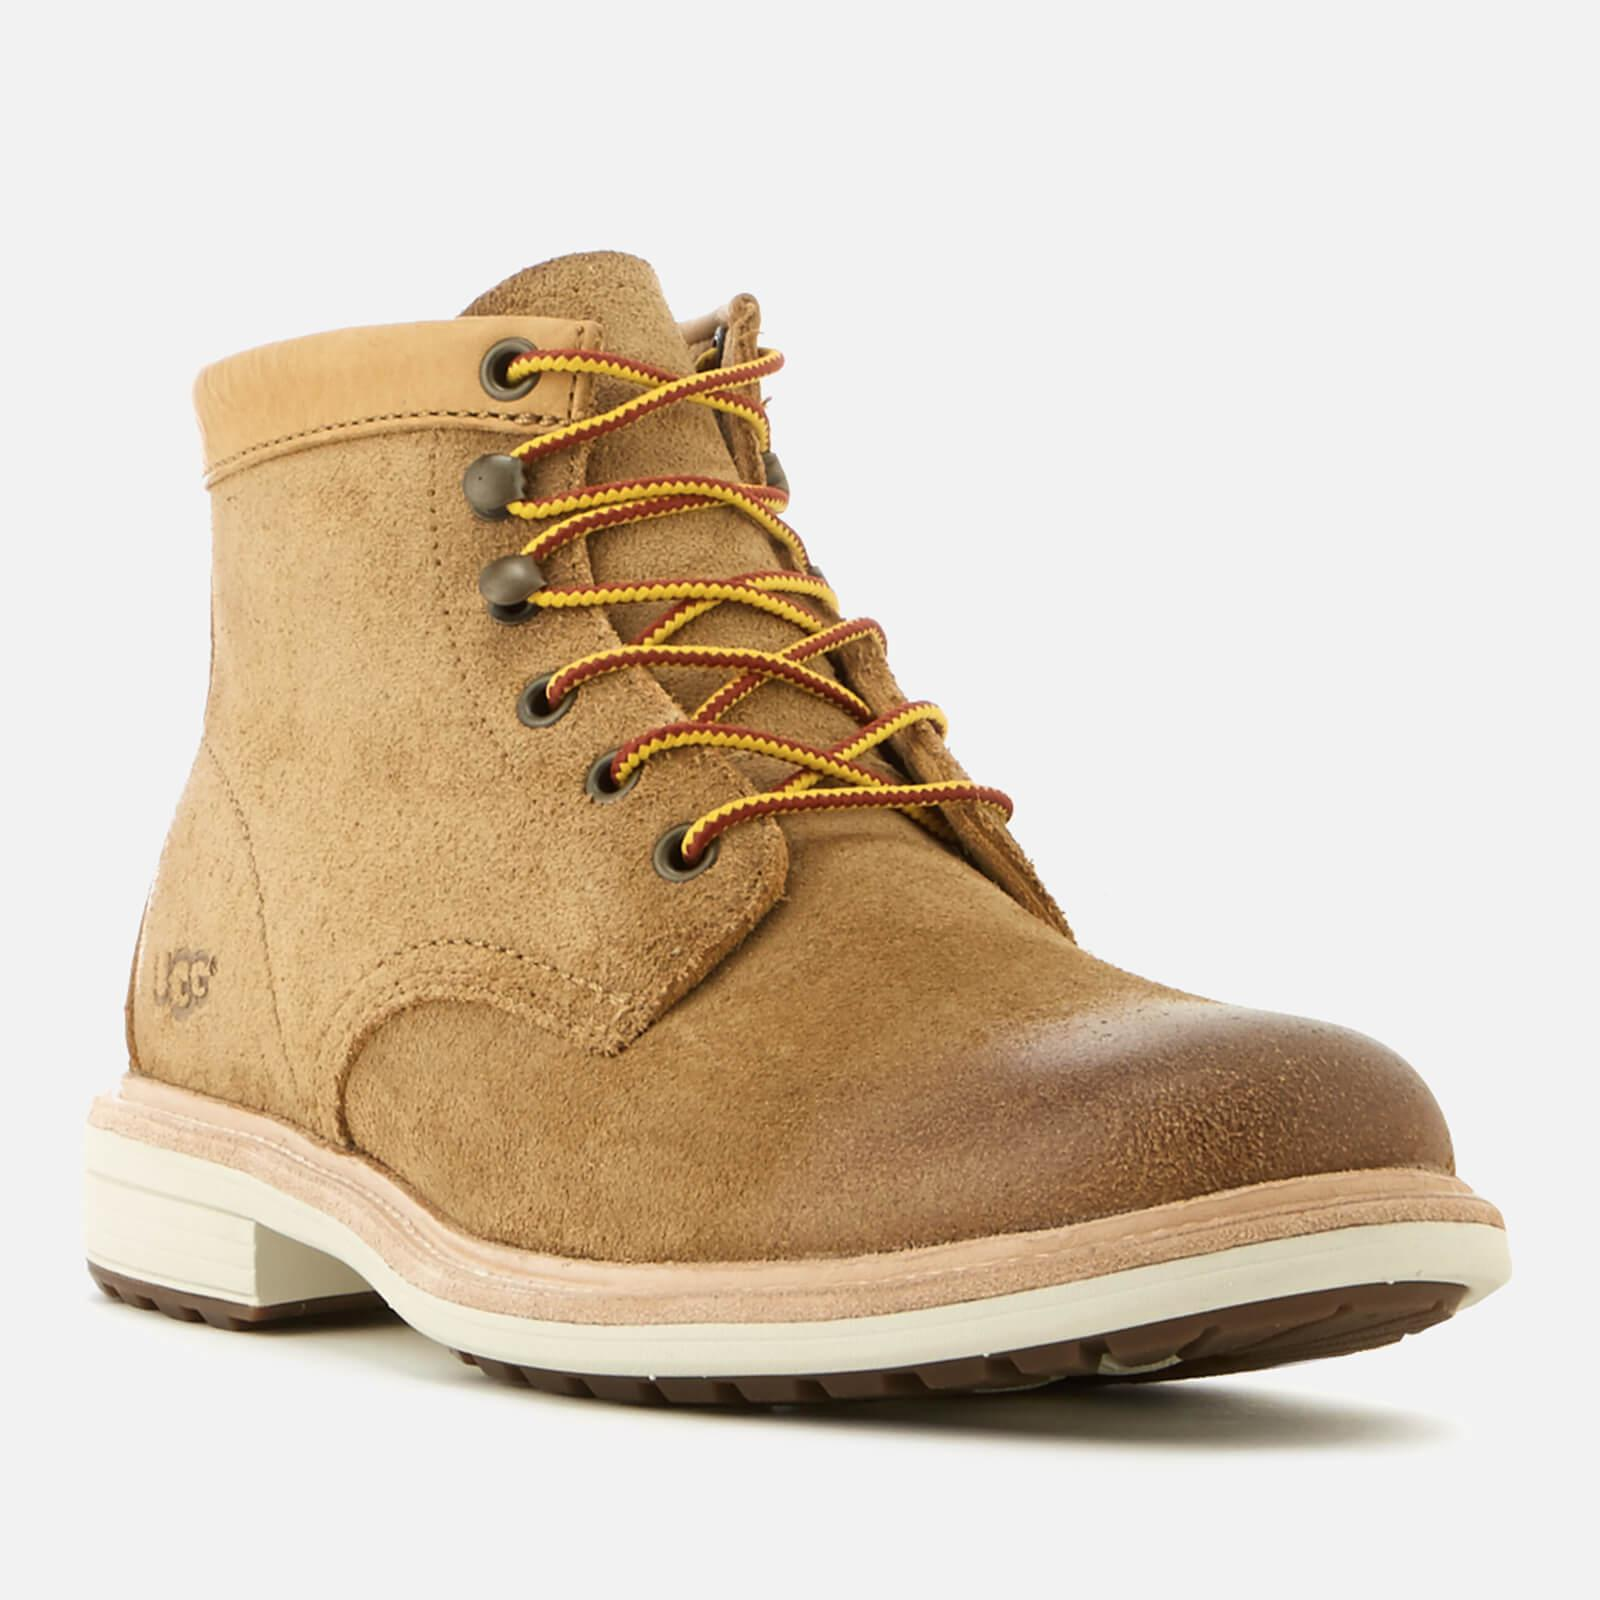 d7041289a48 Ugg Brown Vestmar Leather Lace Up Boots for men